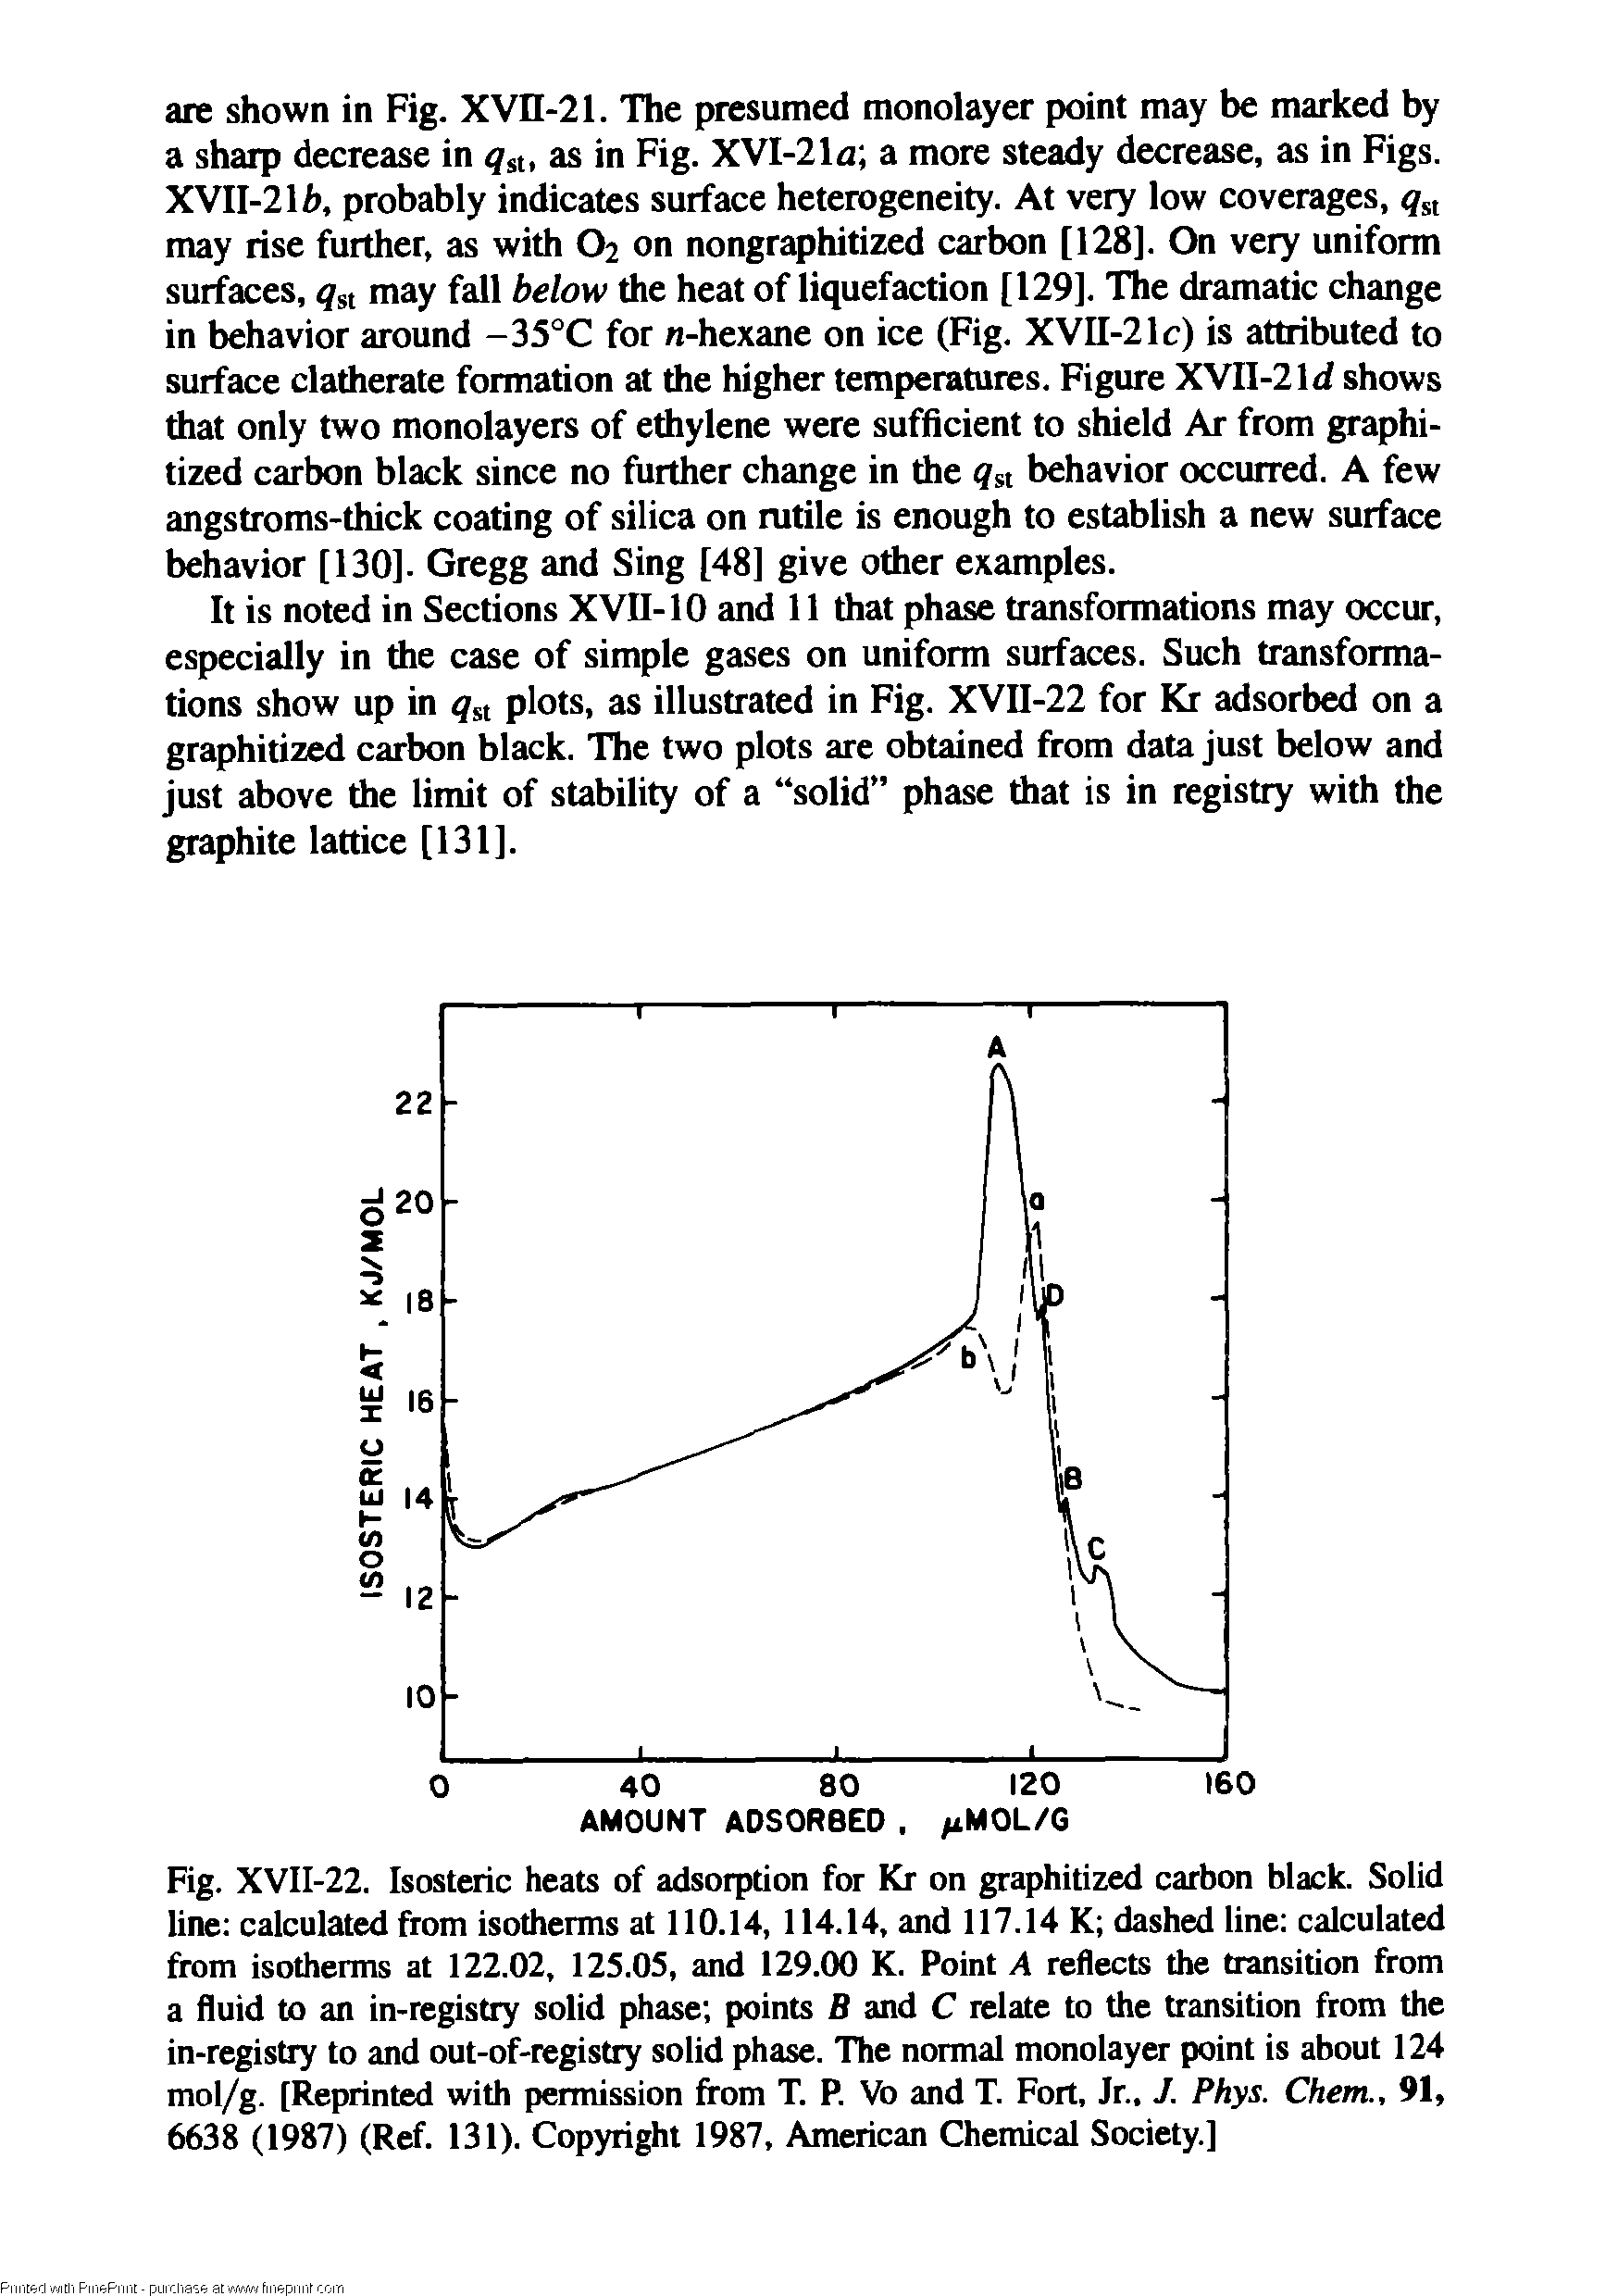 Fig. XVII-22. Isosteric heats of adsorption for Kr on graphitized carbon black. Solid line calculated from isotherms at 110.14, 114.14, and 117.14 K dashed line calculated from isotherms at 122.02, 125.05, and 129.00 K. Point A reflects the transition from a fluid to an in-registry solid phase points B and C relate to the transition from the in-registry to and out-of-registry solid phase. The normal monolayer point is about 124 mol/g. [Reprinted with permission from T. P. Vo and T. Fort, Jr., J. Phys. Chem., 91, 6638 (1987) (Ref. 131). Copyright 1987, American Chemical Society.]...